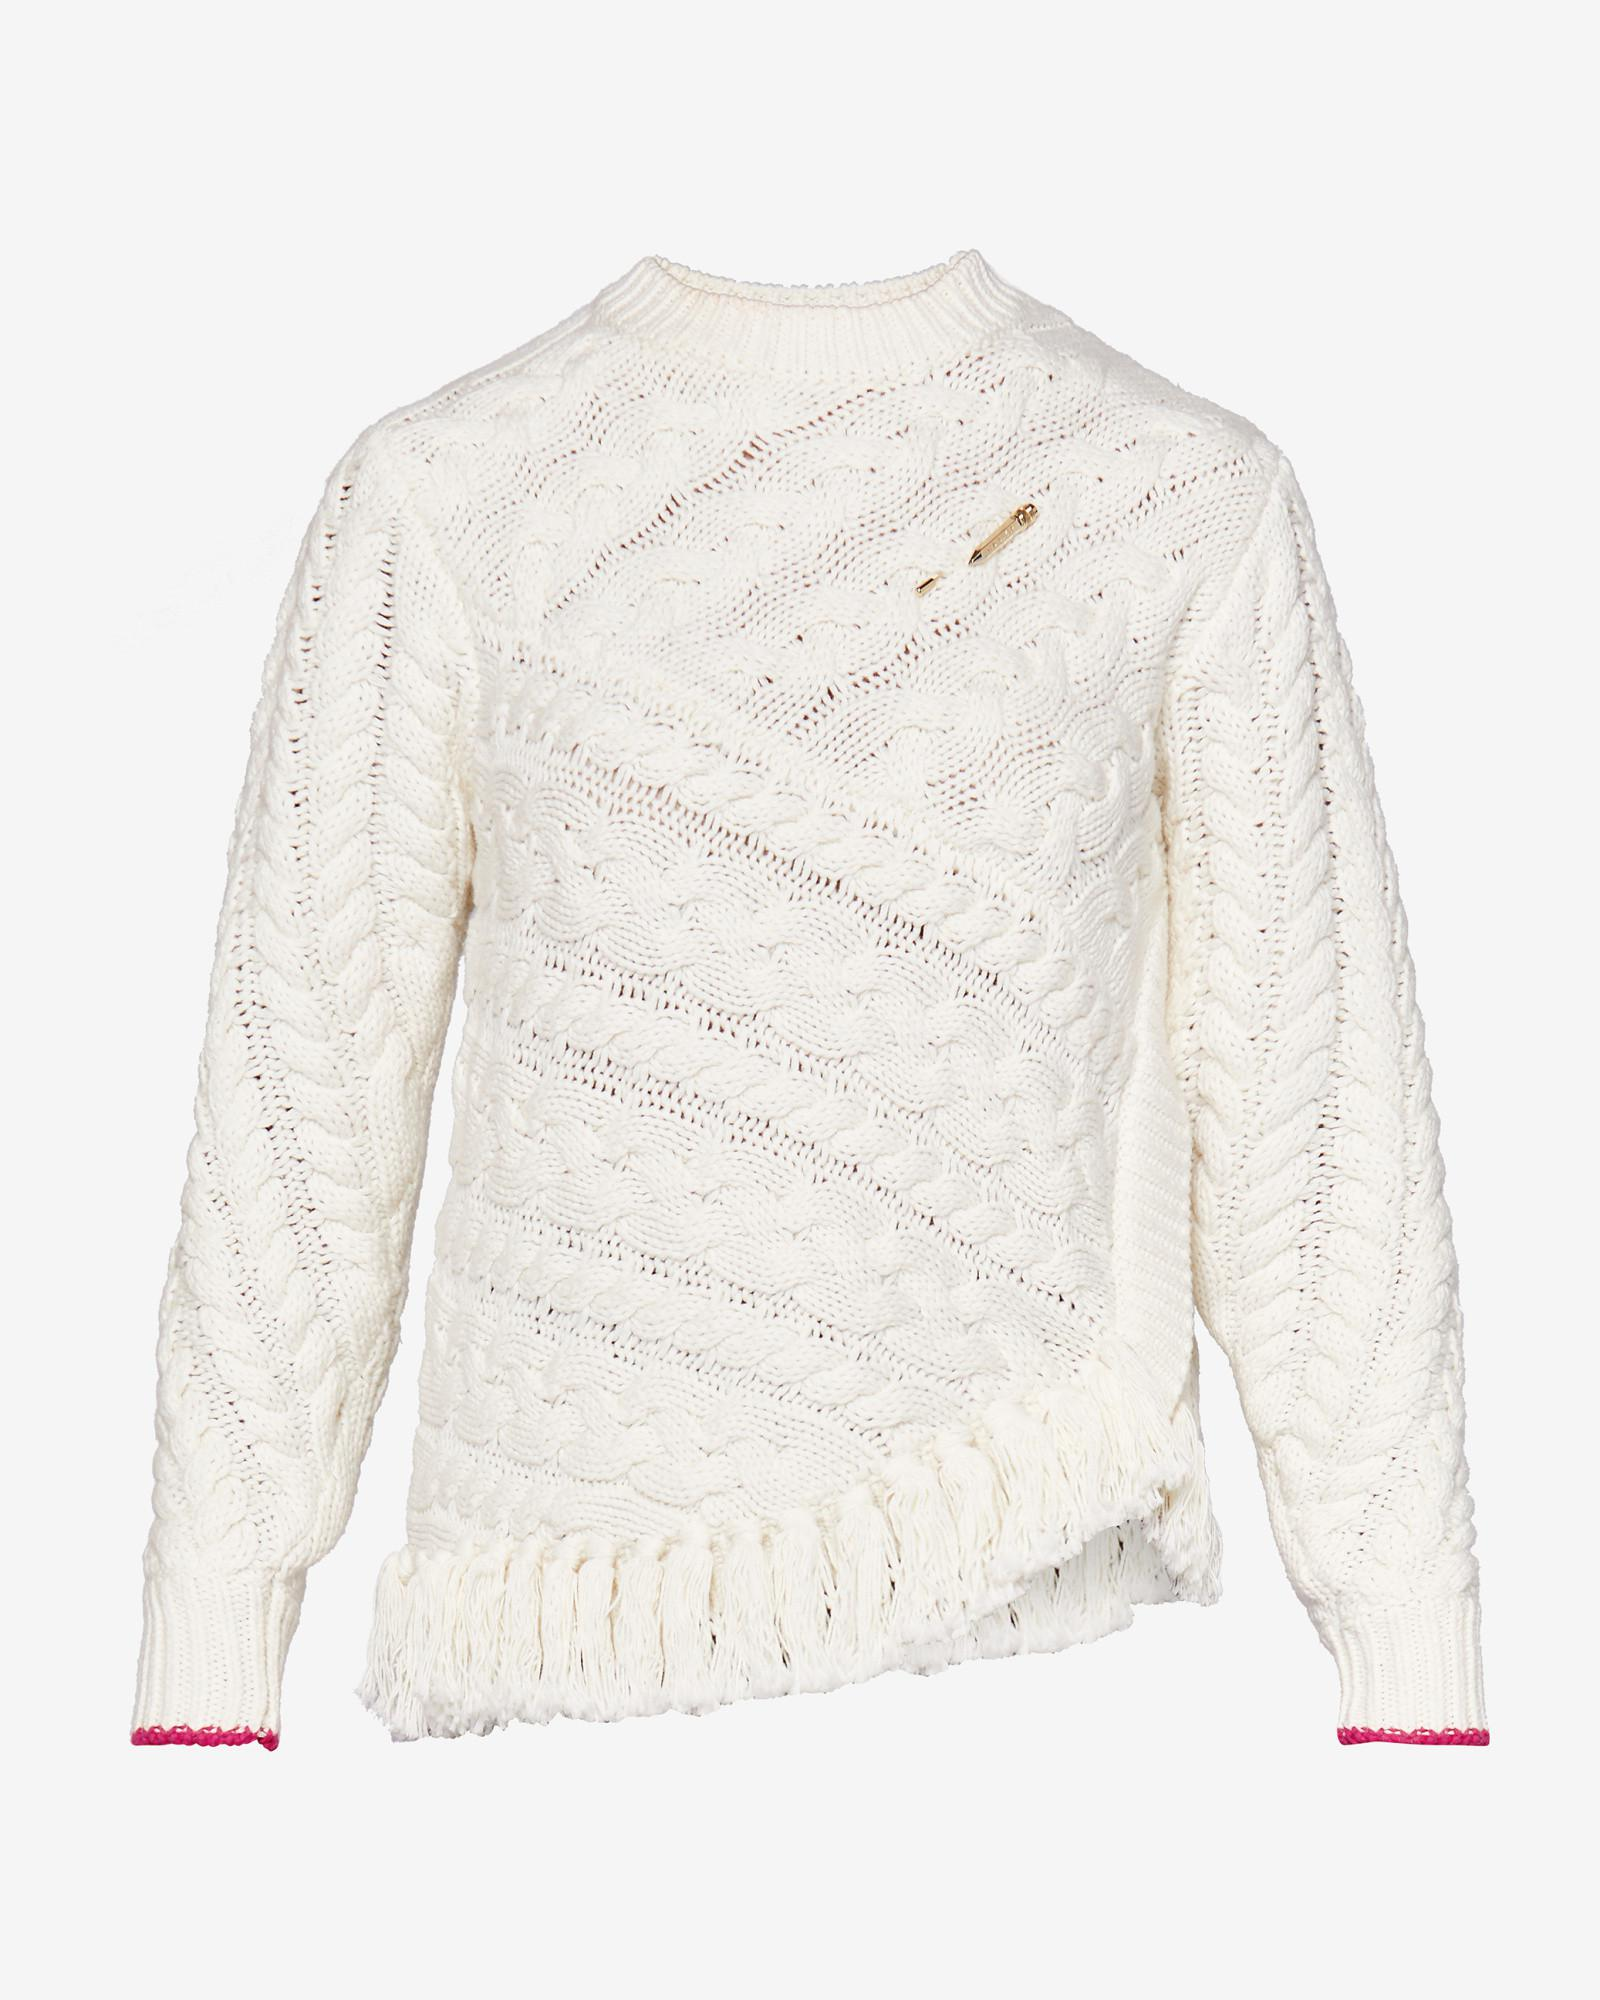 633bc32ba17a91 Lyst - Ted Baker Fringed Cable Knit Jumper in White